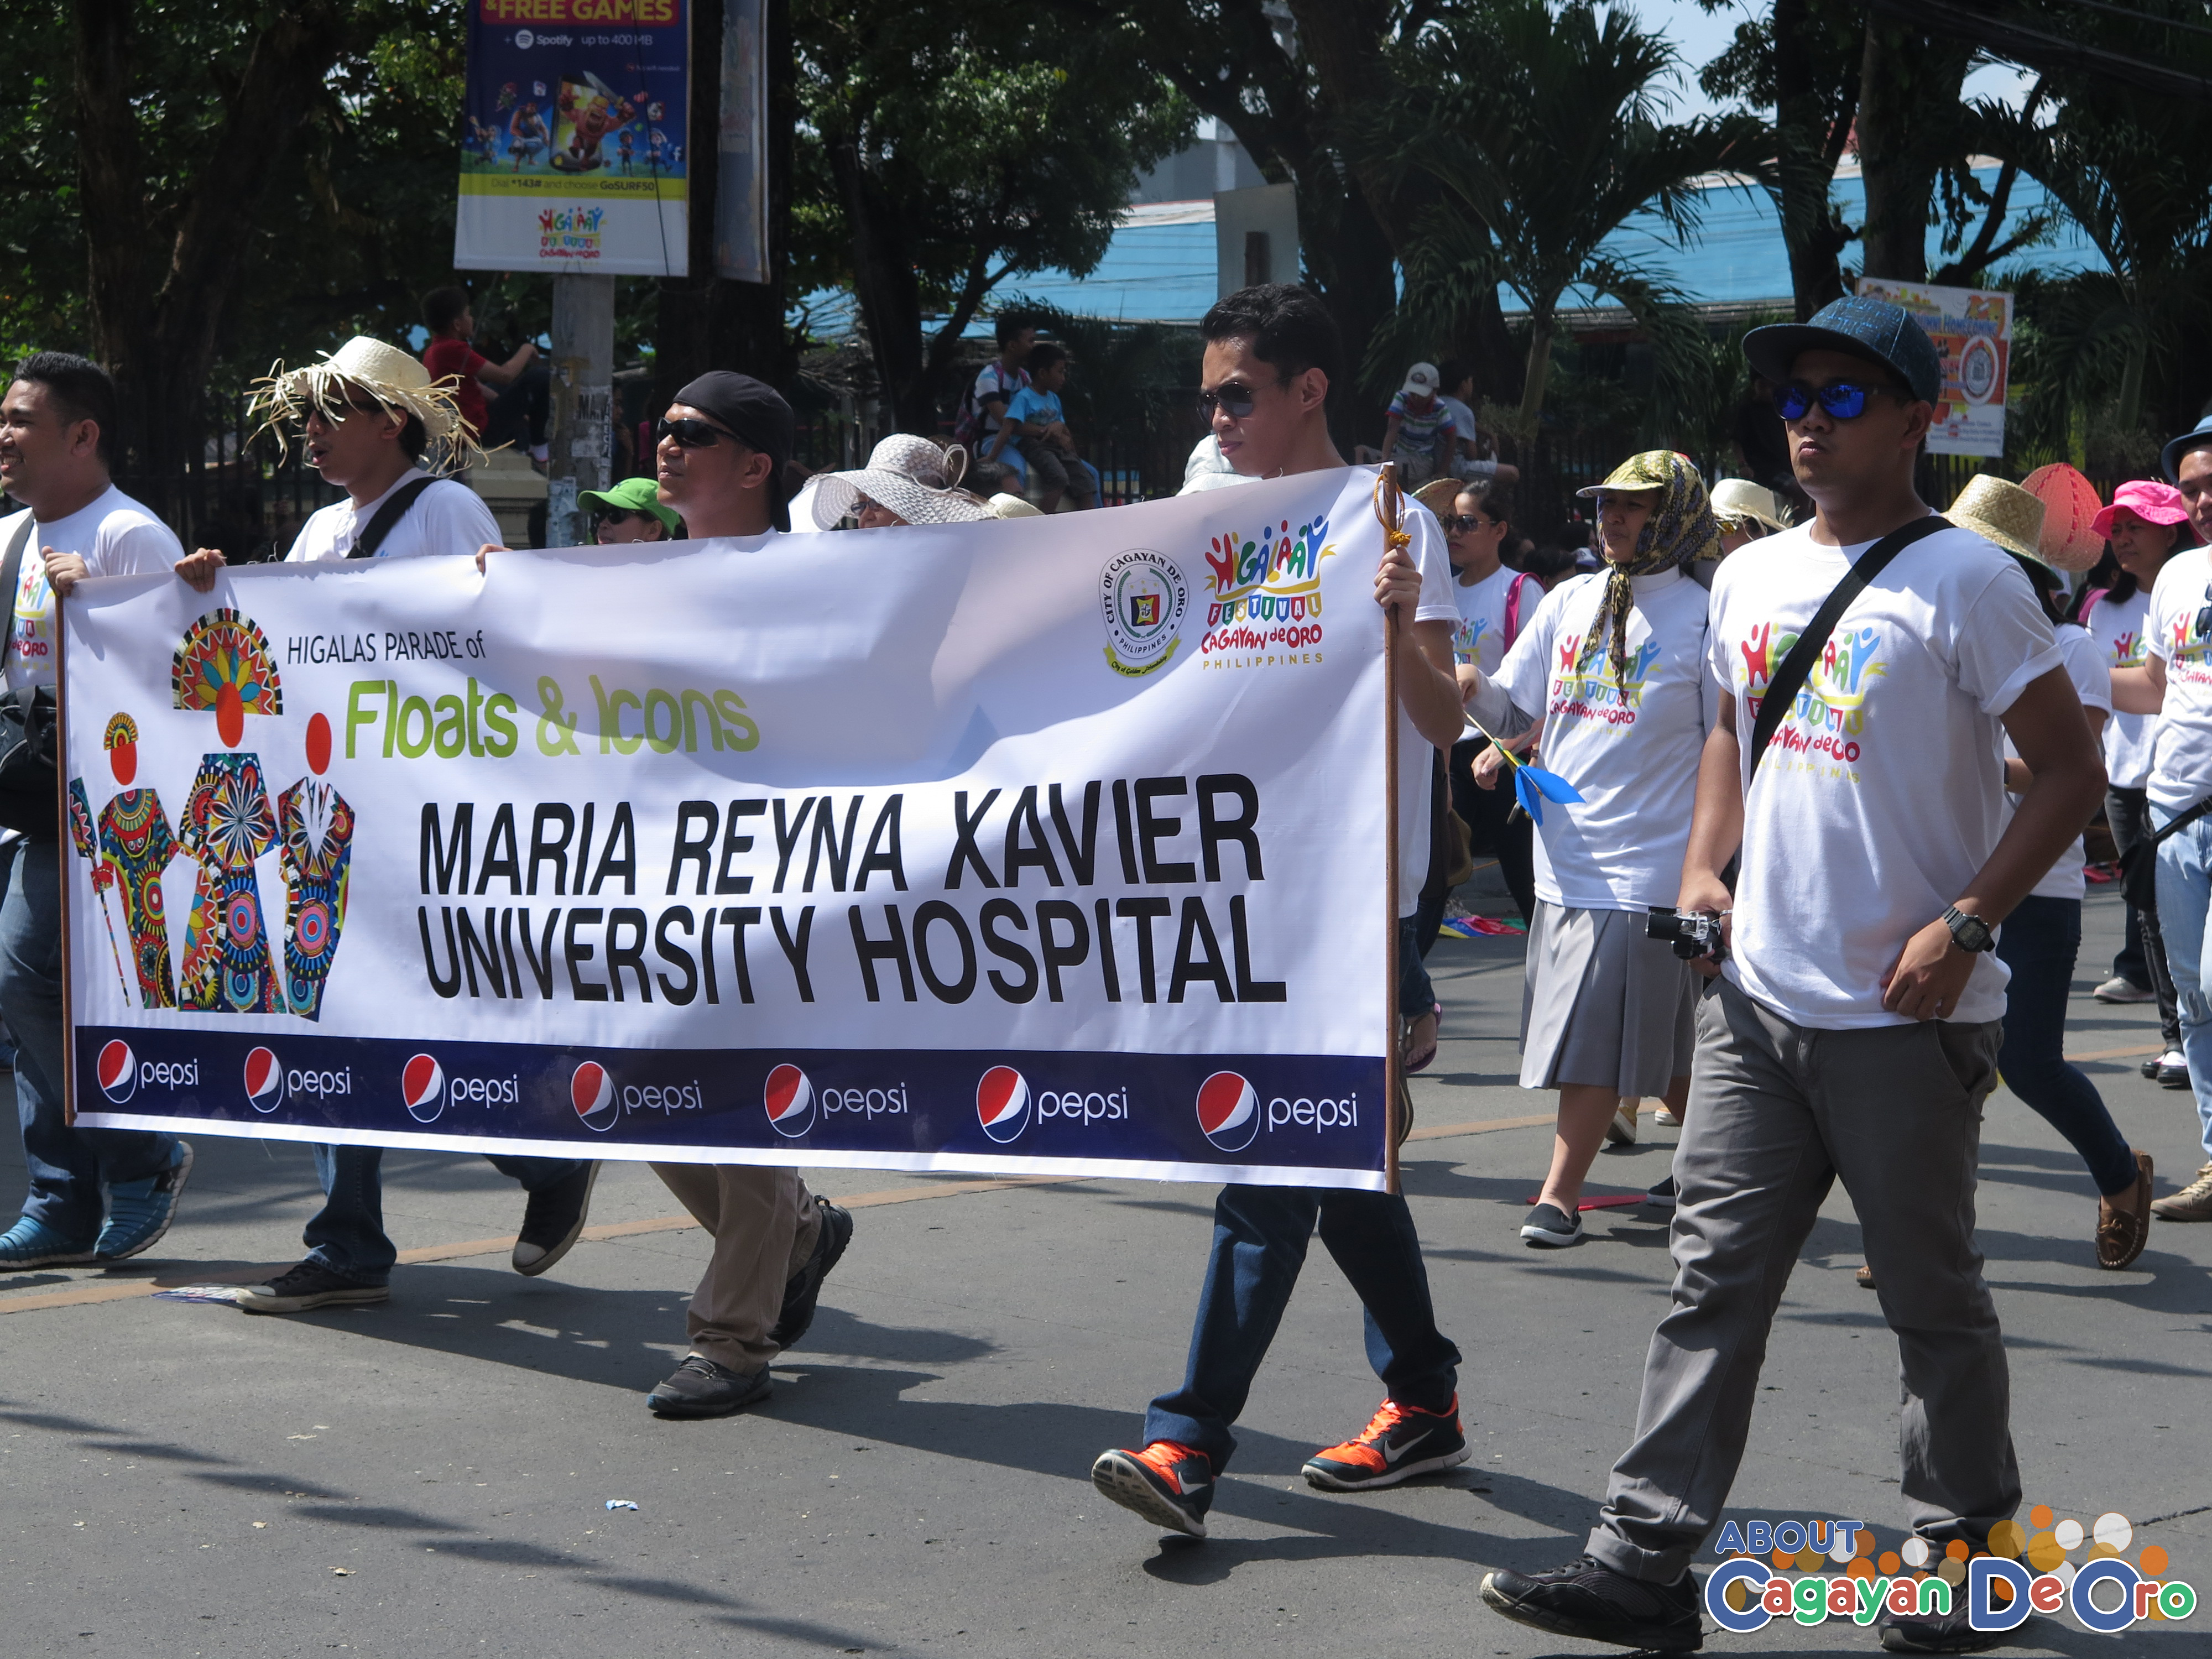 Maria Reyna Xavier Hospital at Cagayan de Oro The Higalas Parade of Floats and Icons 2015